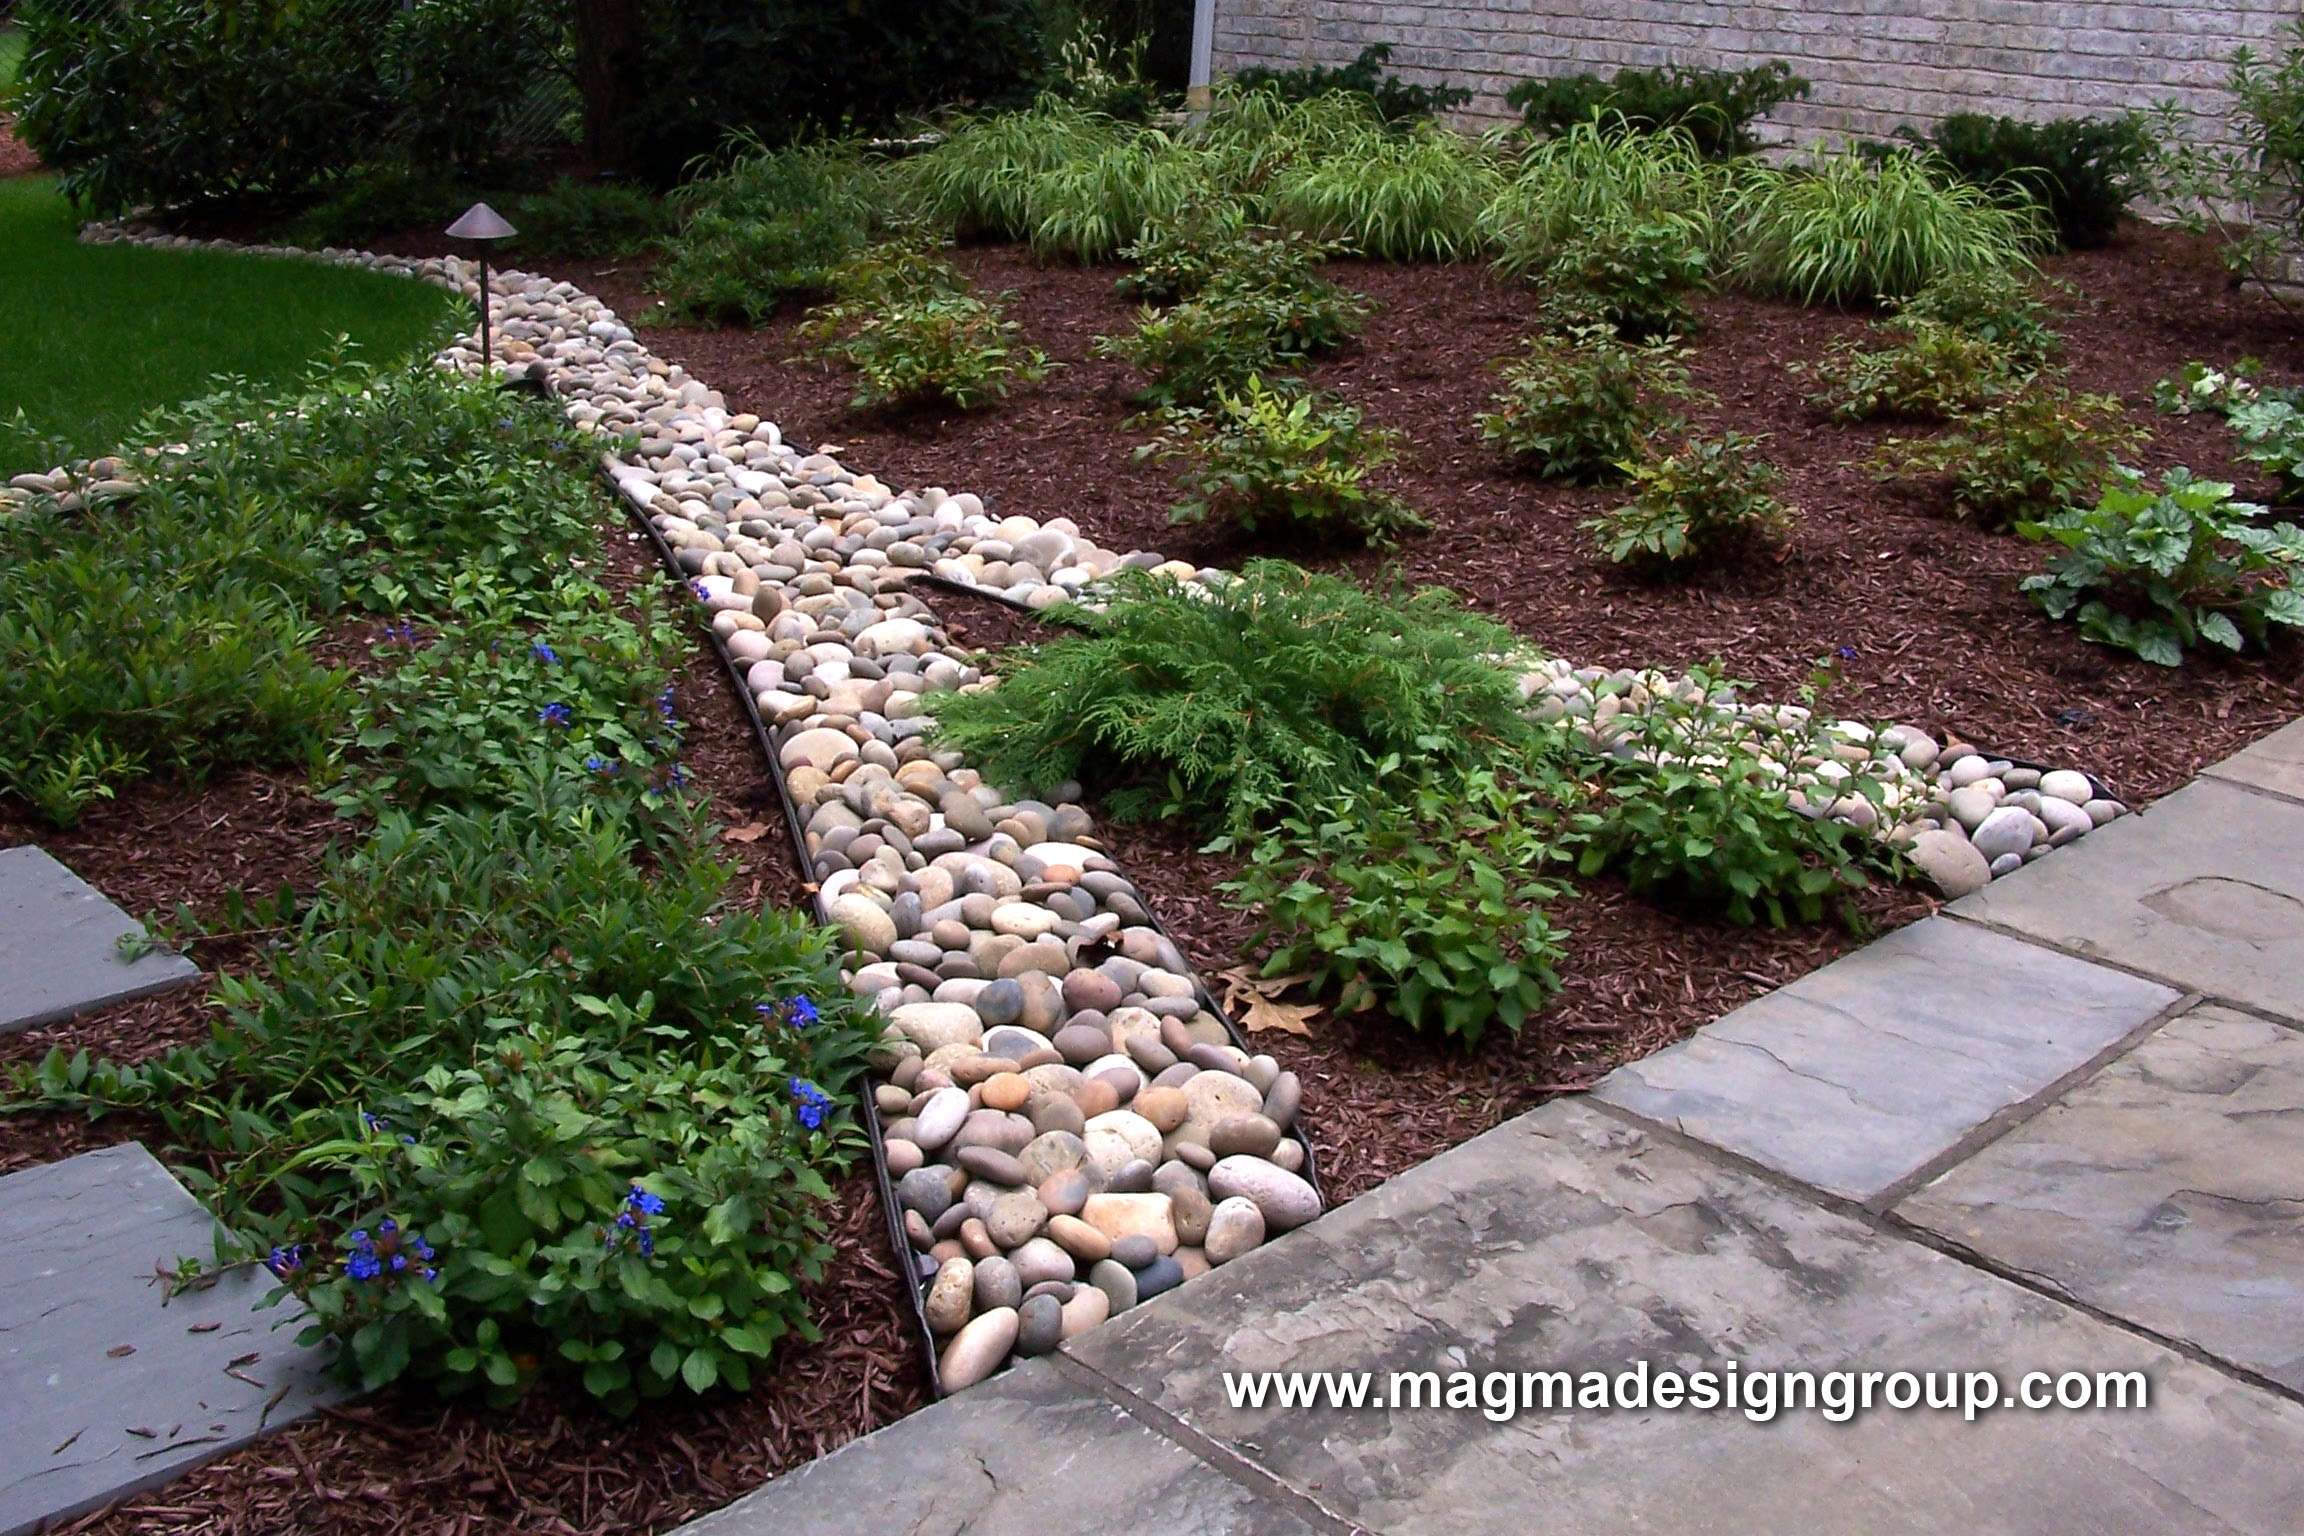 Landscape Edging Ideas | Garden Bed Edging | Metal Garden Edging